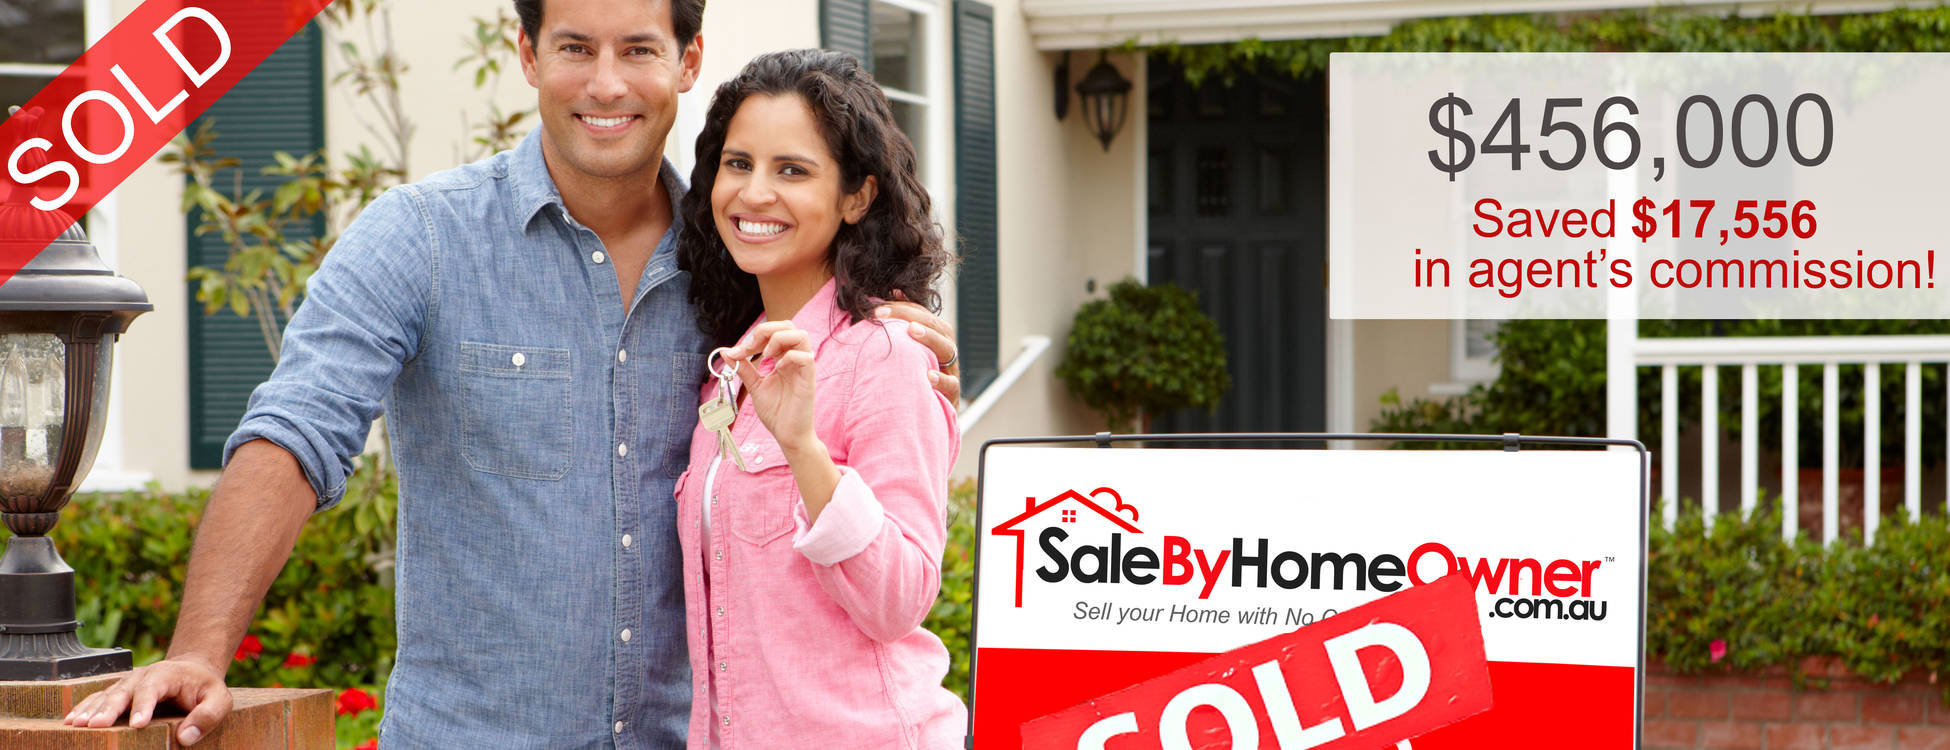 Buy My Home - BuYMyHome